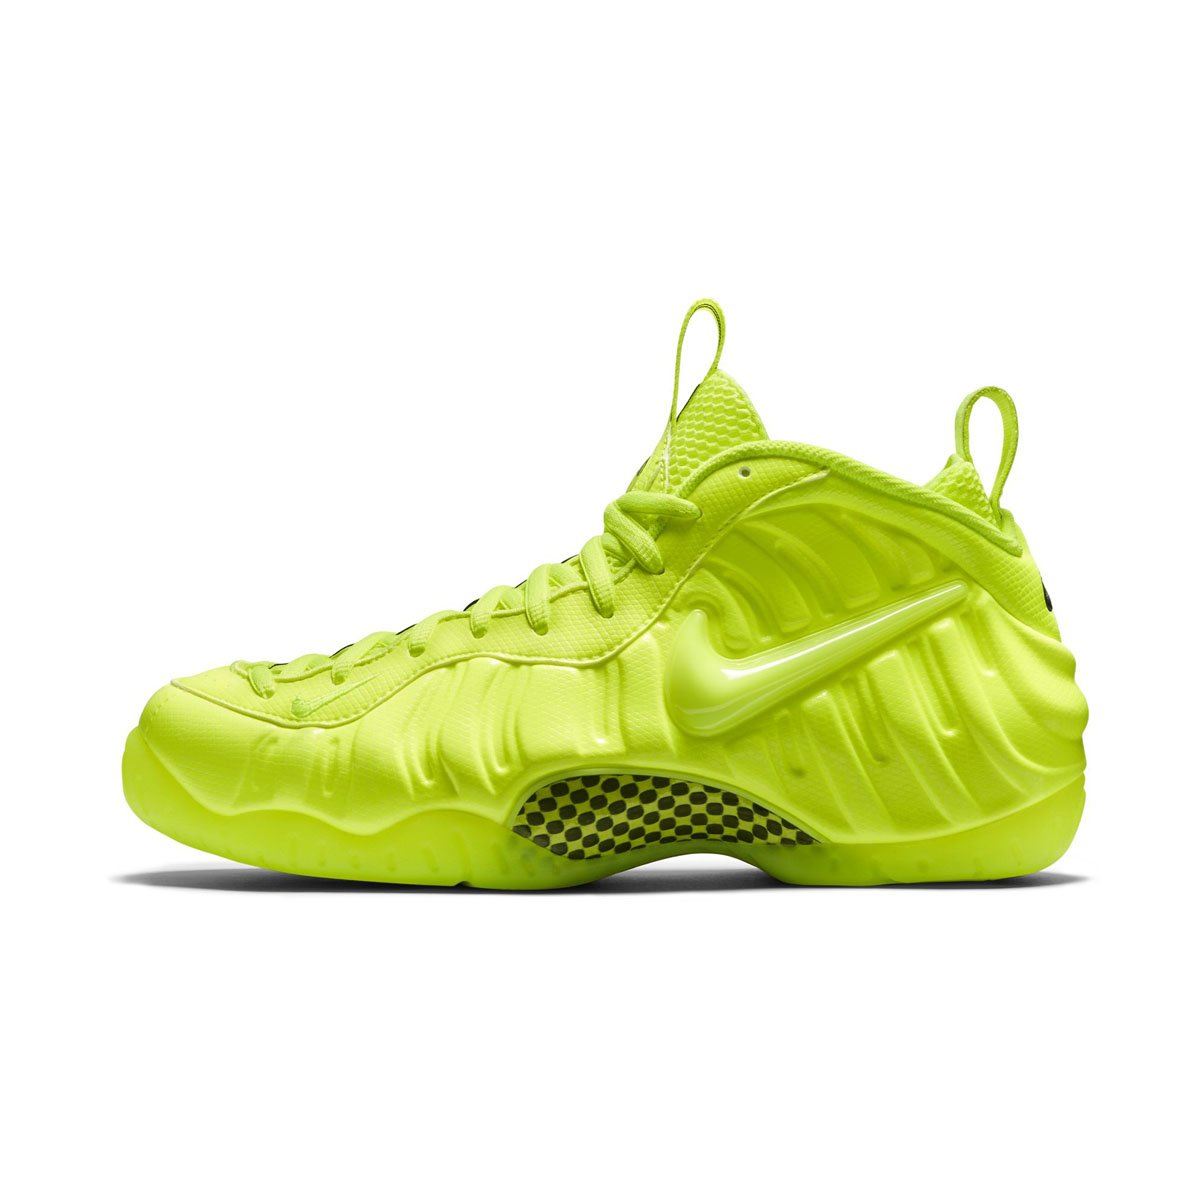 Nike Air Foamposite Pro Men's Shoe